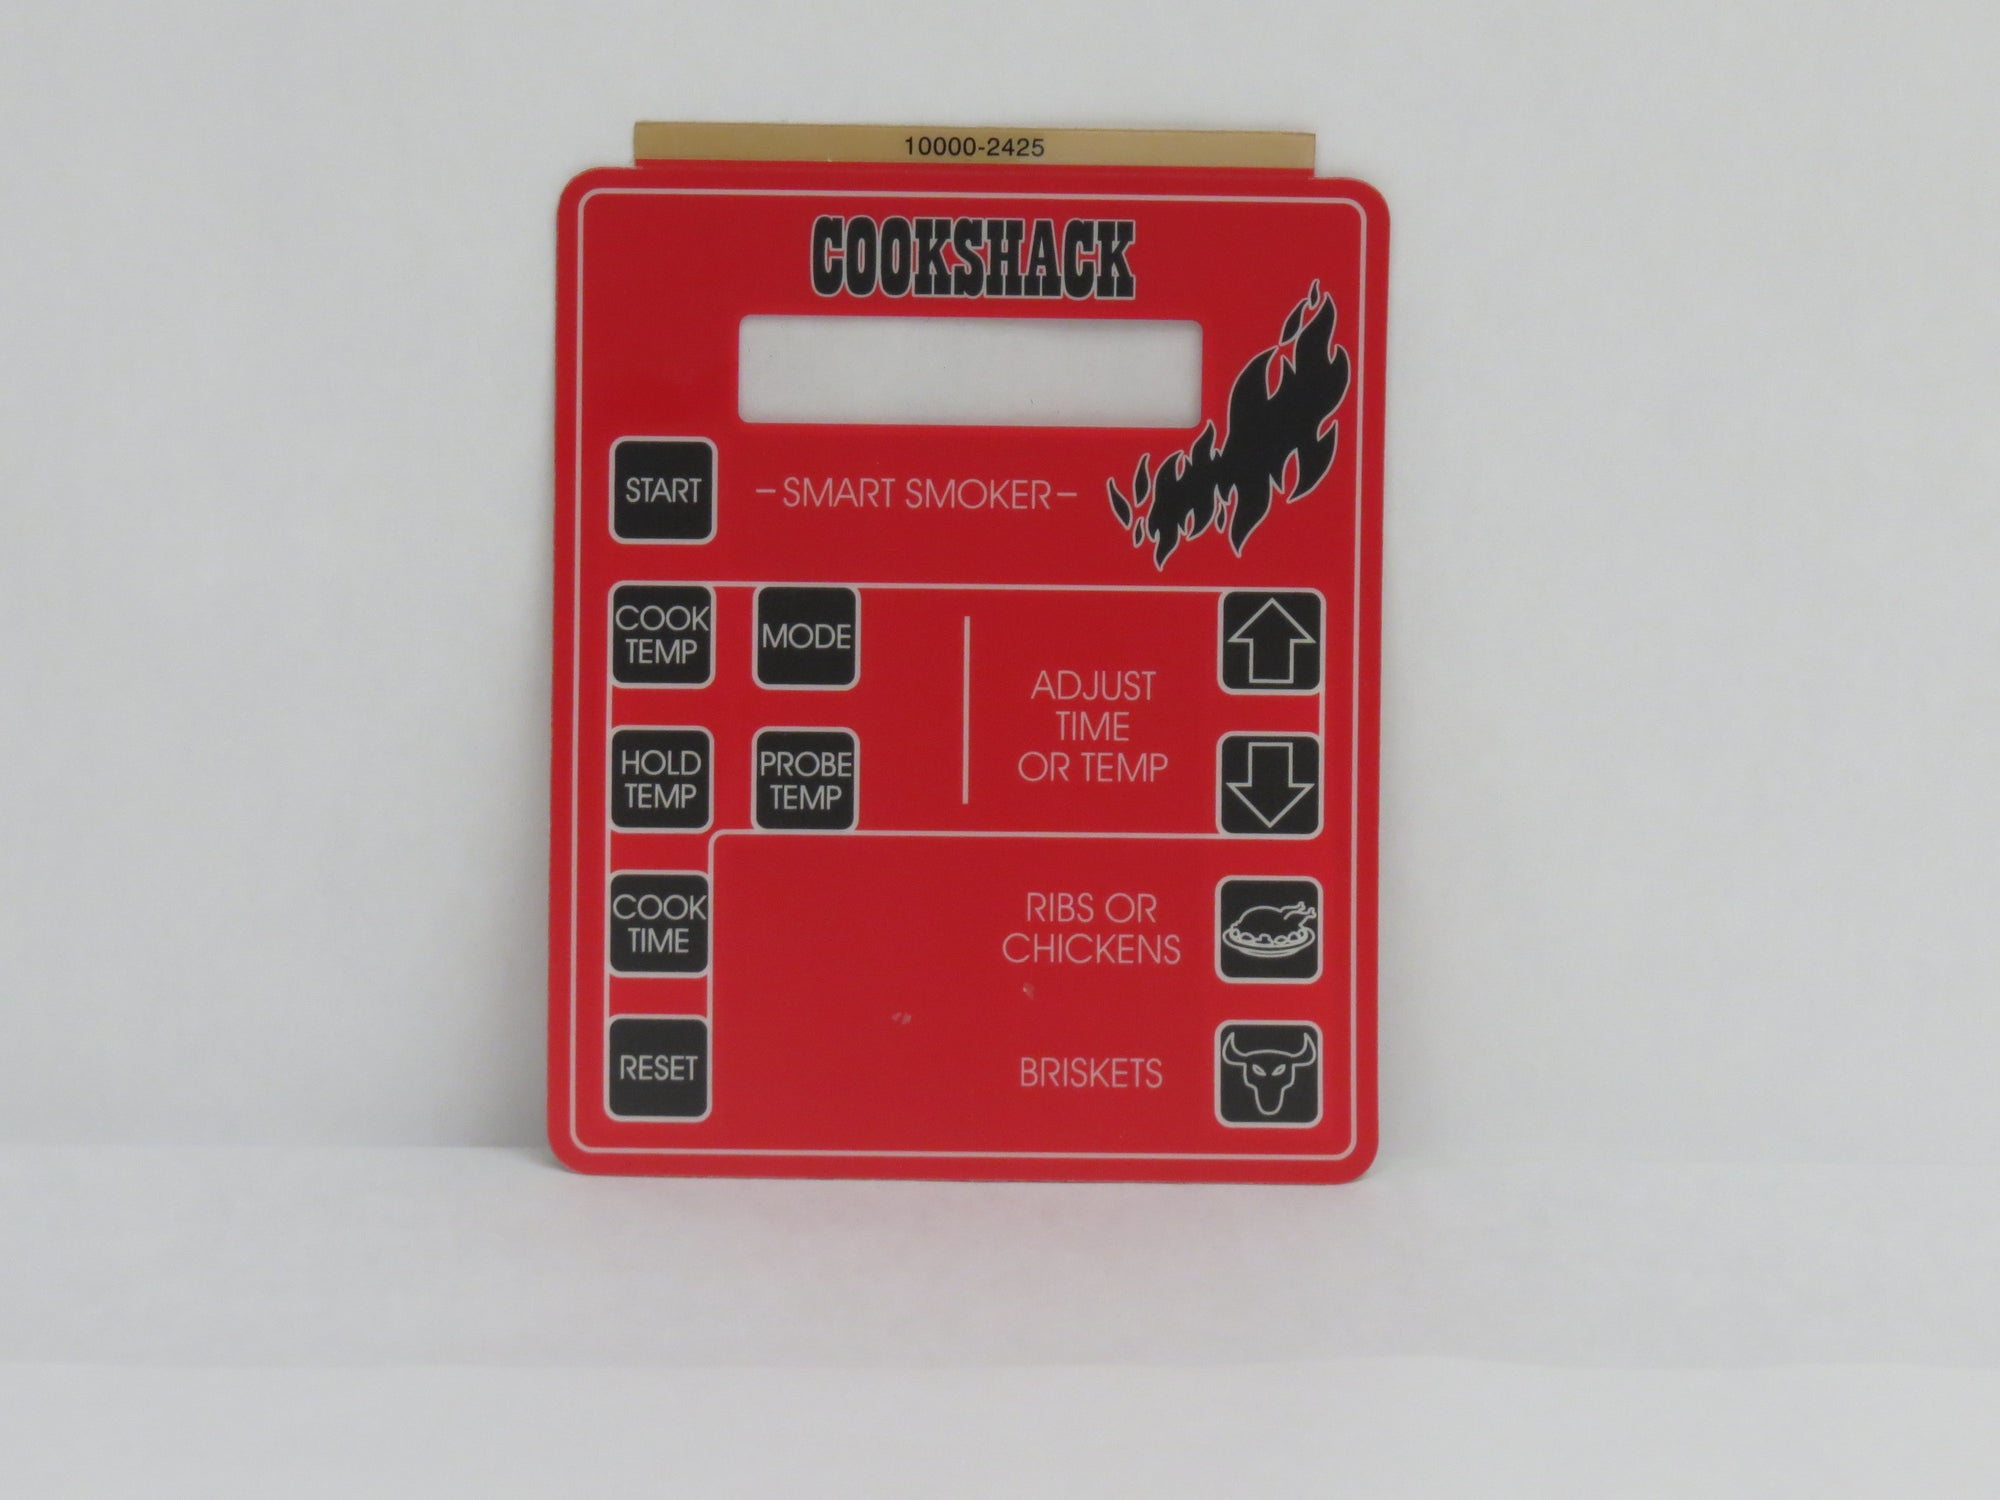 LA152: Replacement label for Cookshack IQ - IQ4 controllers